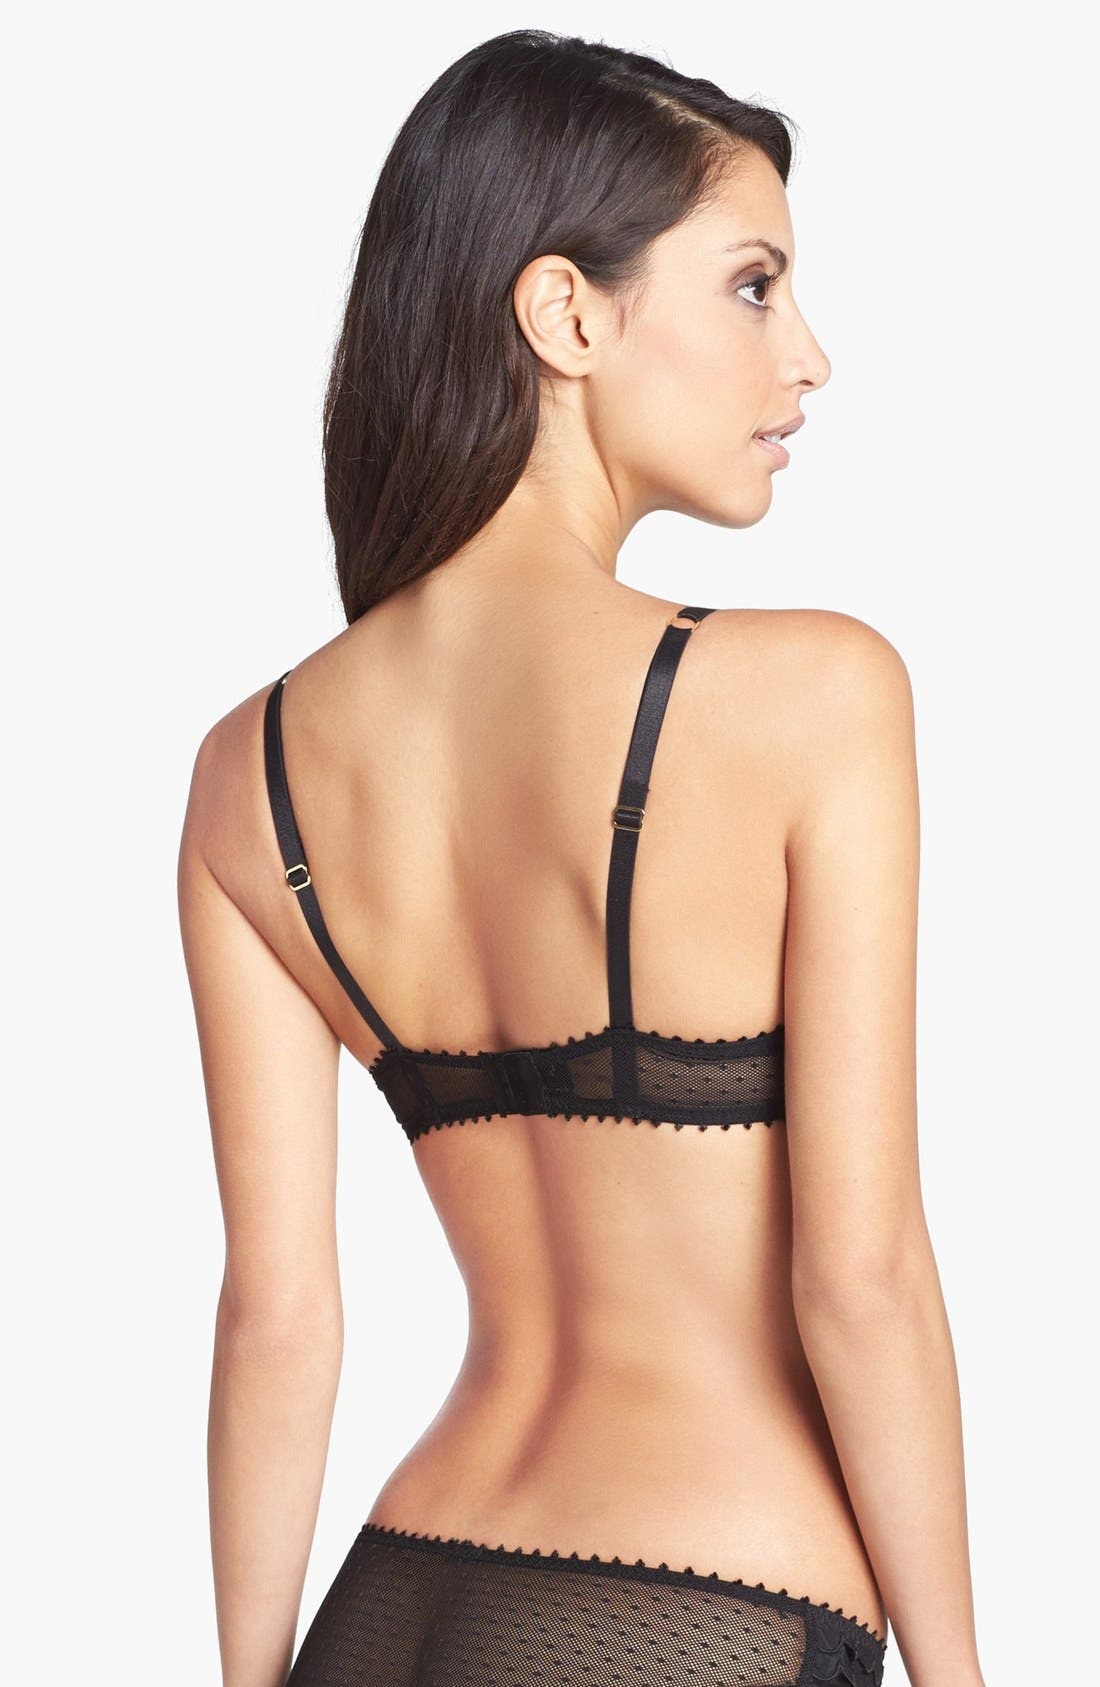 Alternate Image 2  - Stella McCartney 'Becky Smiling' Underwire Balconette Bra